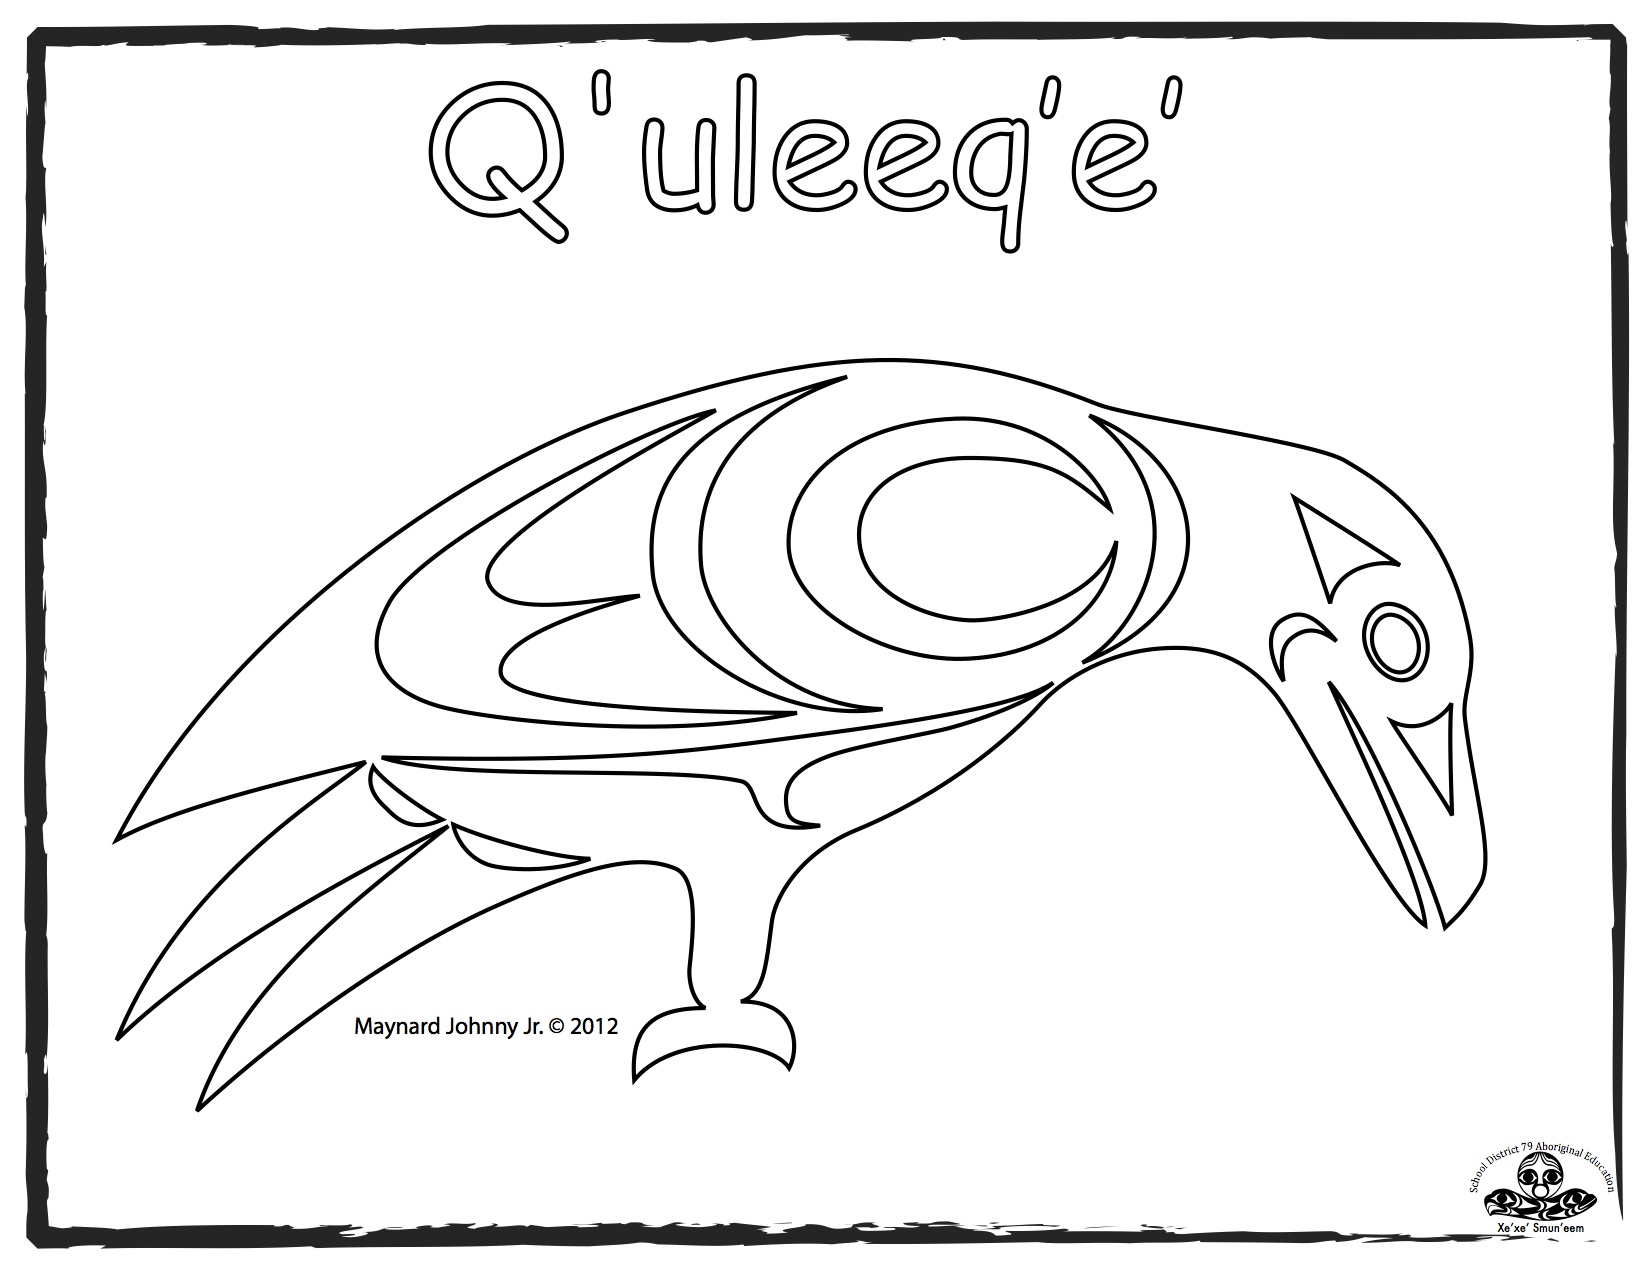 crow-quleeqe-outline